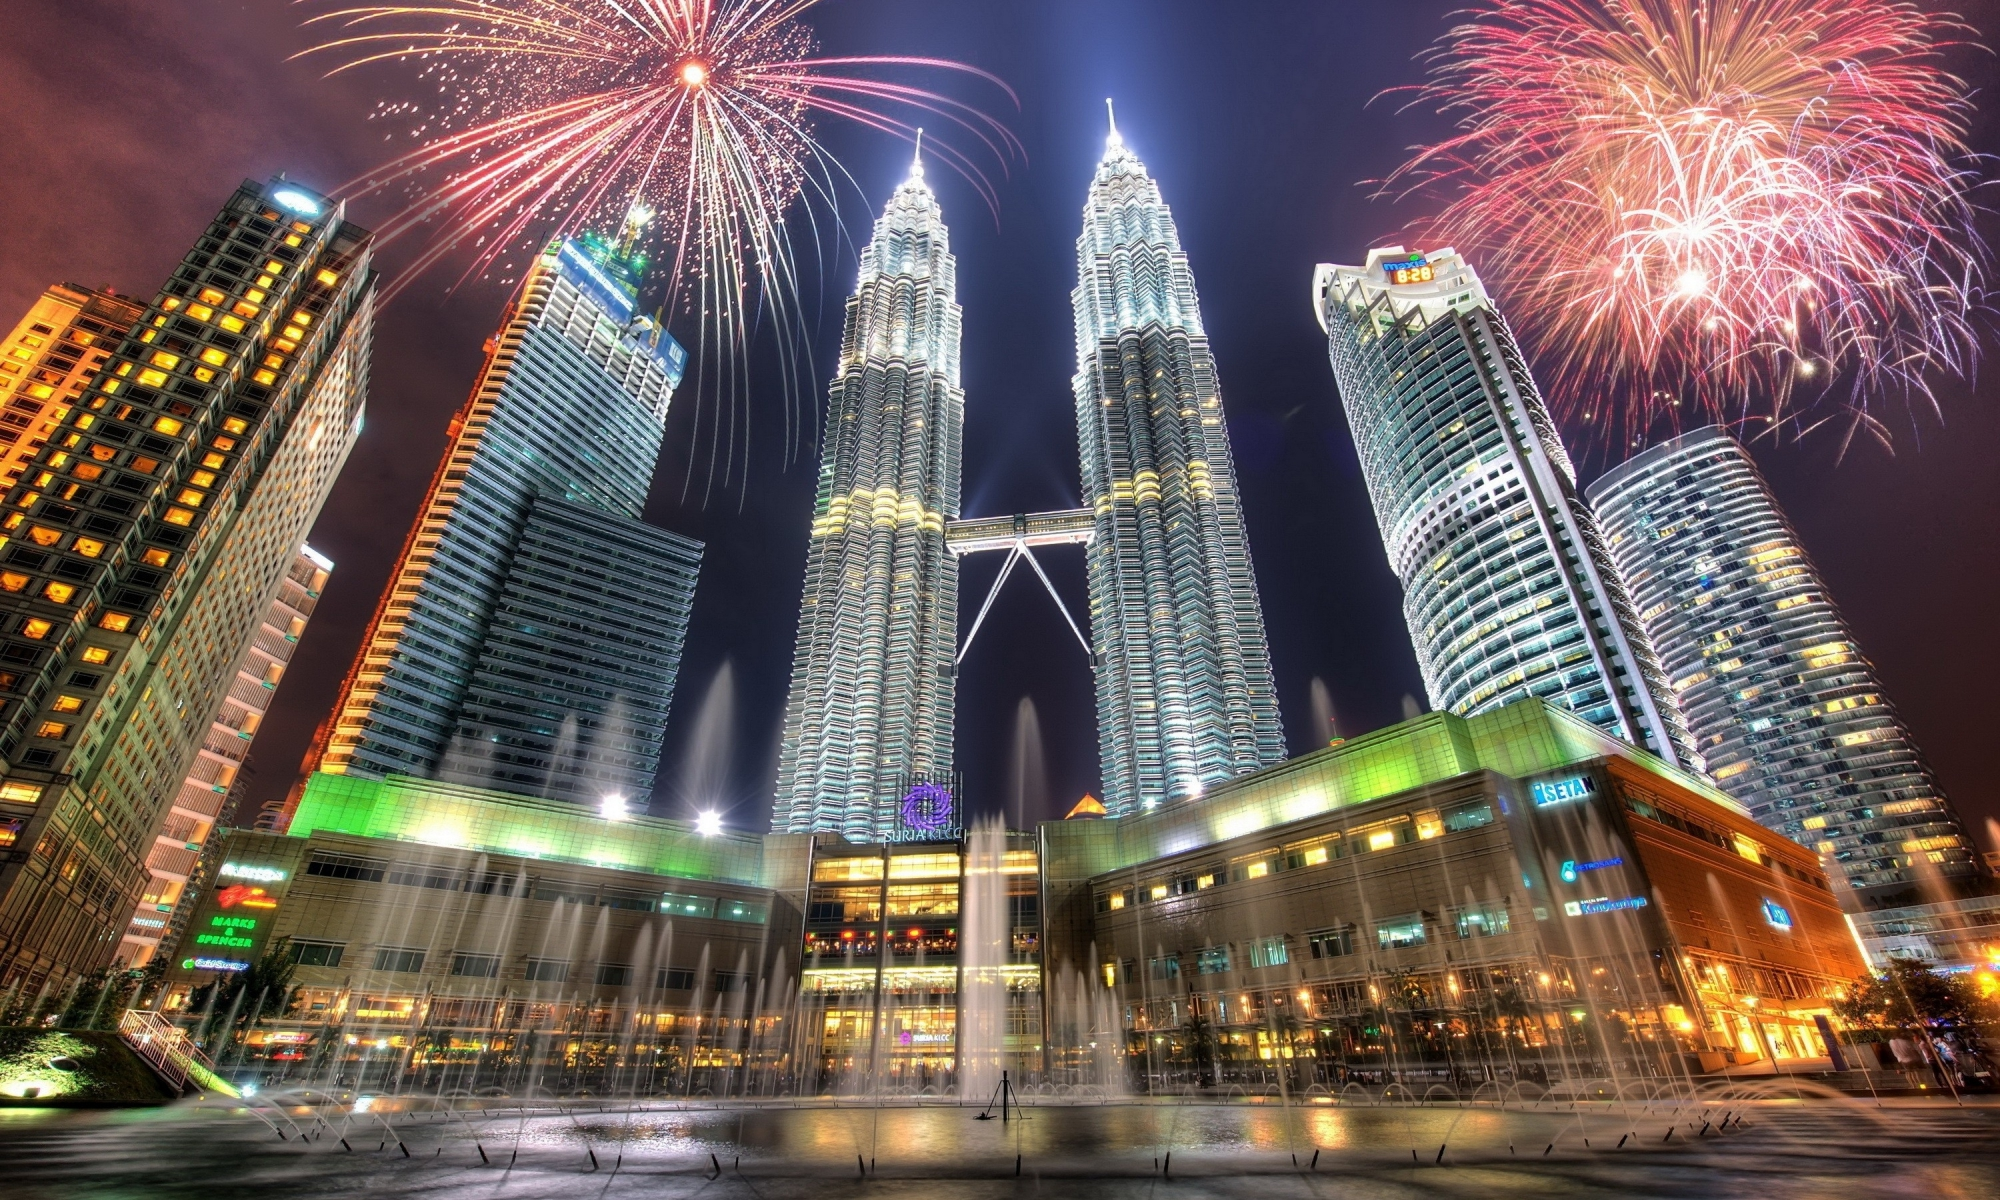 16 Parties to Celebrate New Year's Eve in Kuala Lumpur 2018